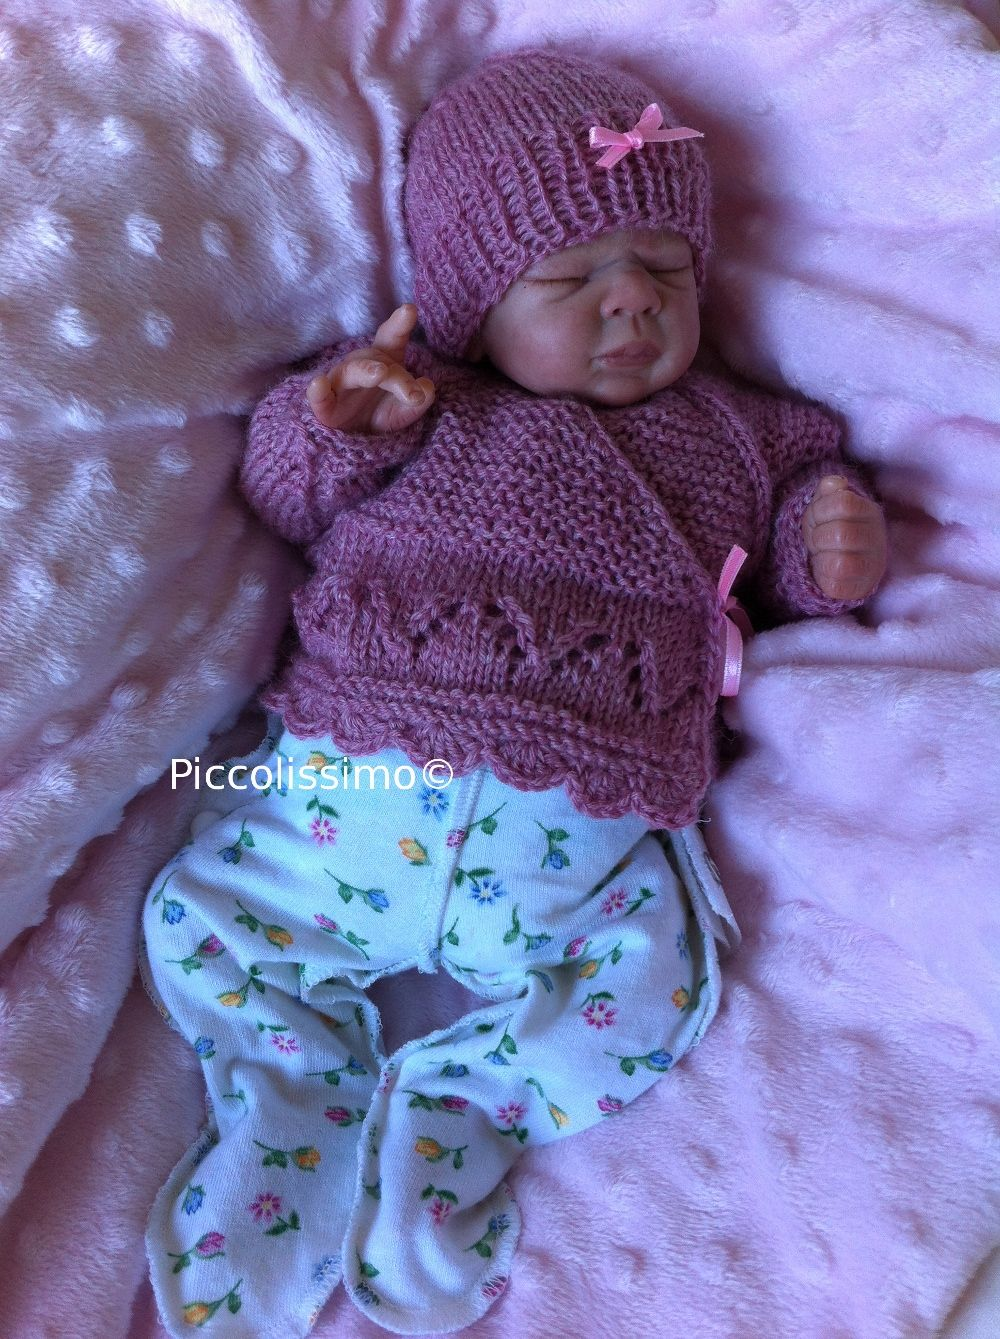 knitted dusk pink cross over top and hat 12 inch micro preemie ...